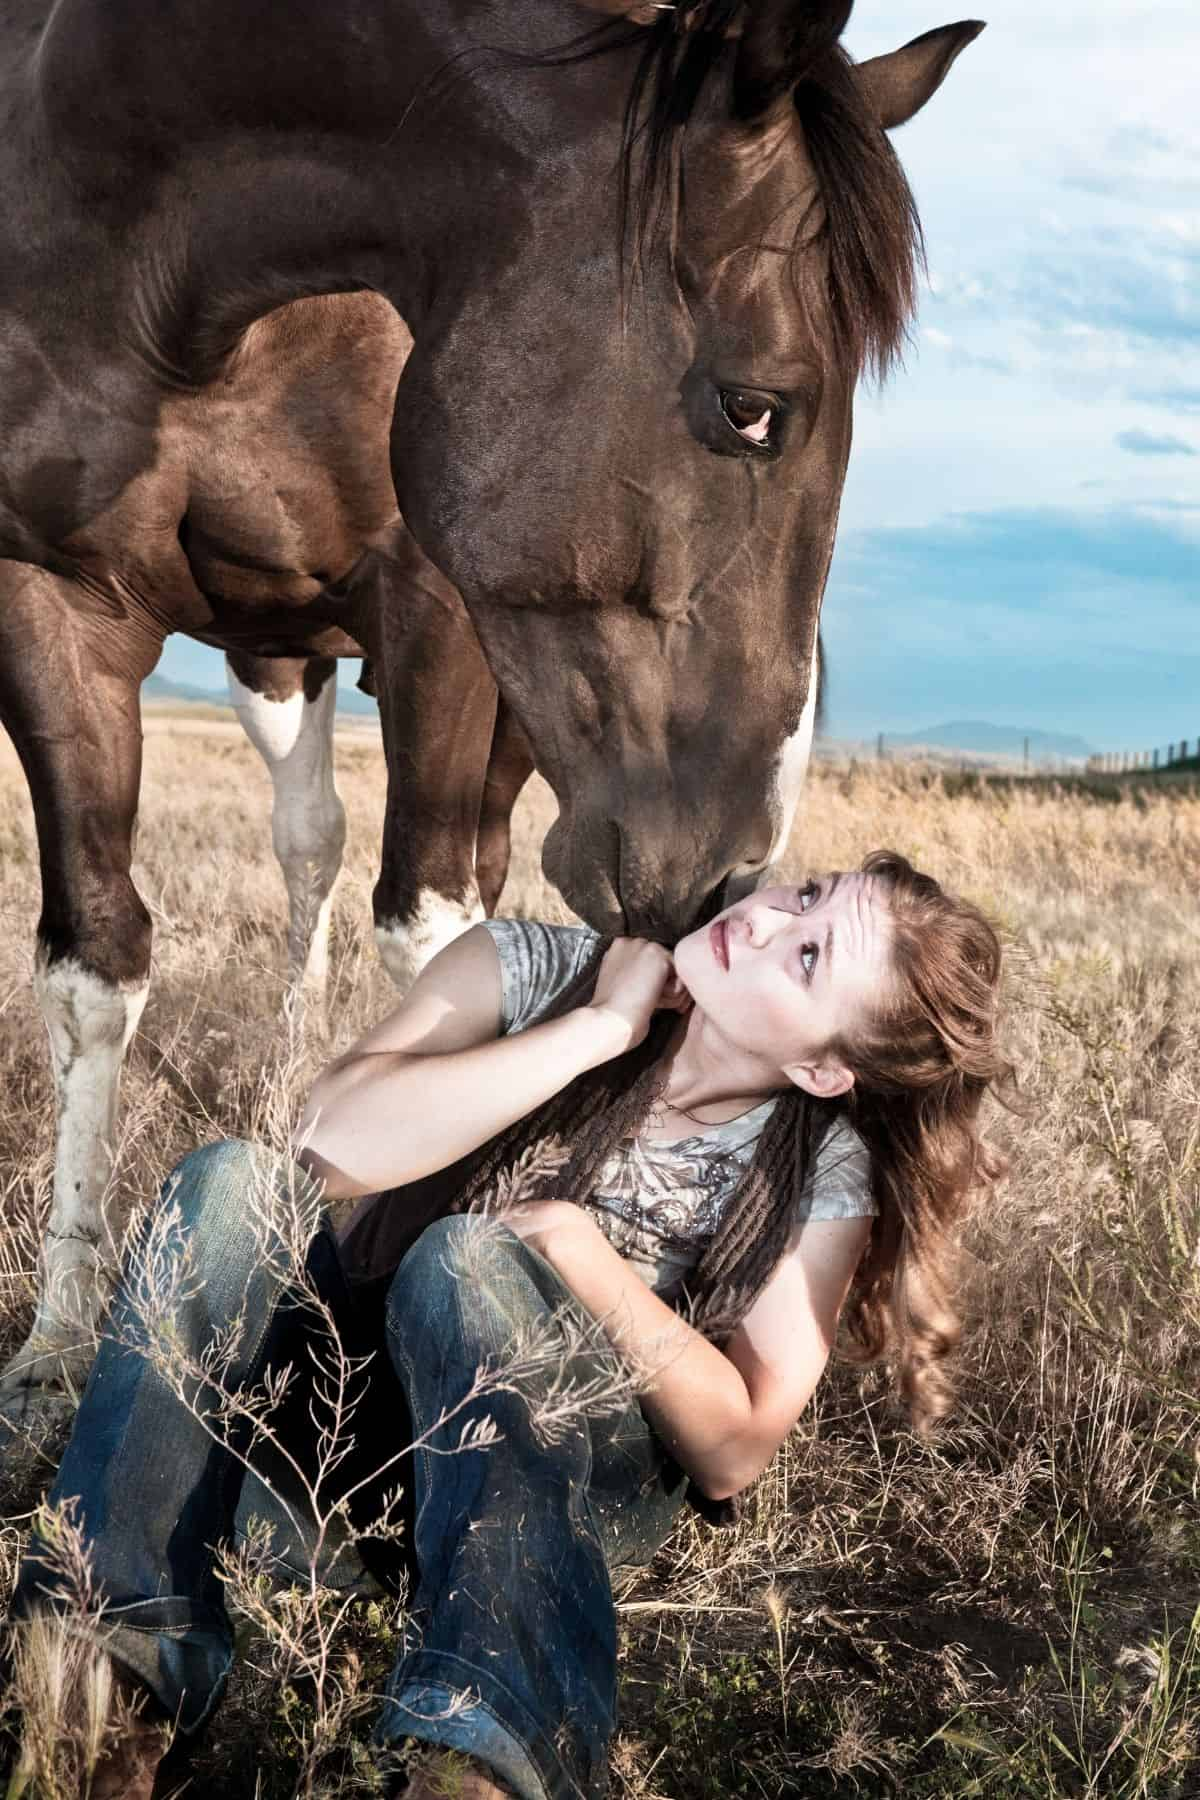 Brunette girl sitting on ground with horse above givin gkiss